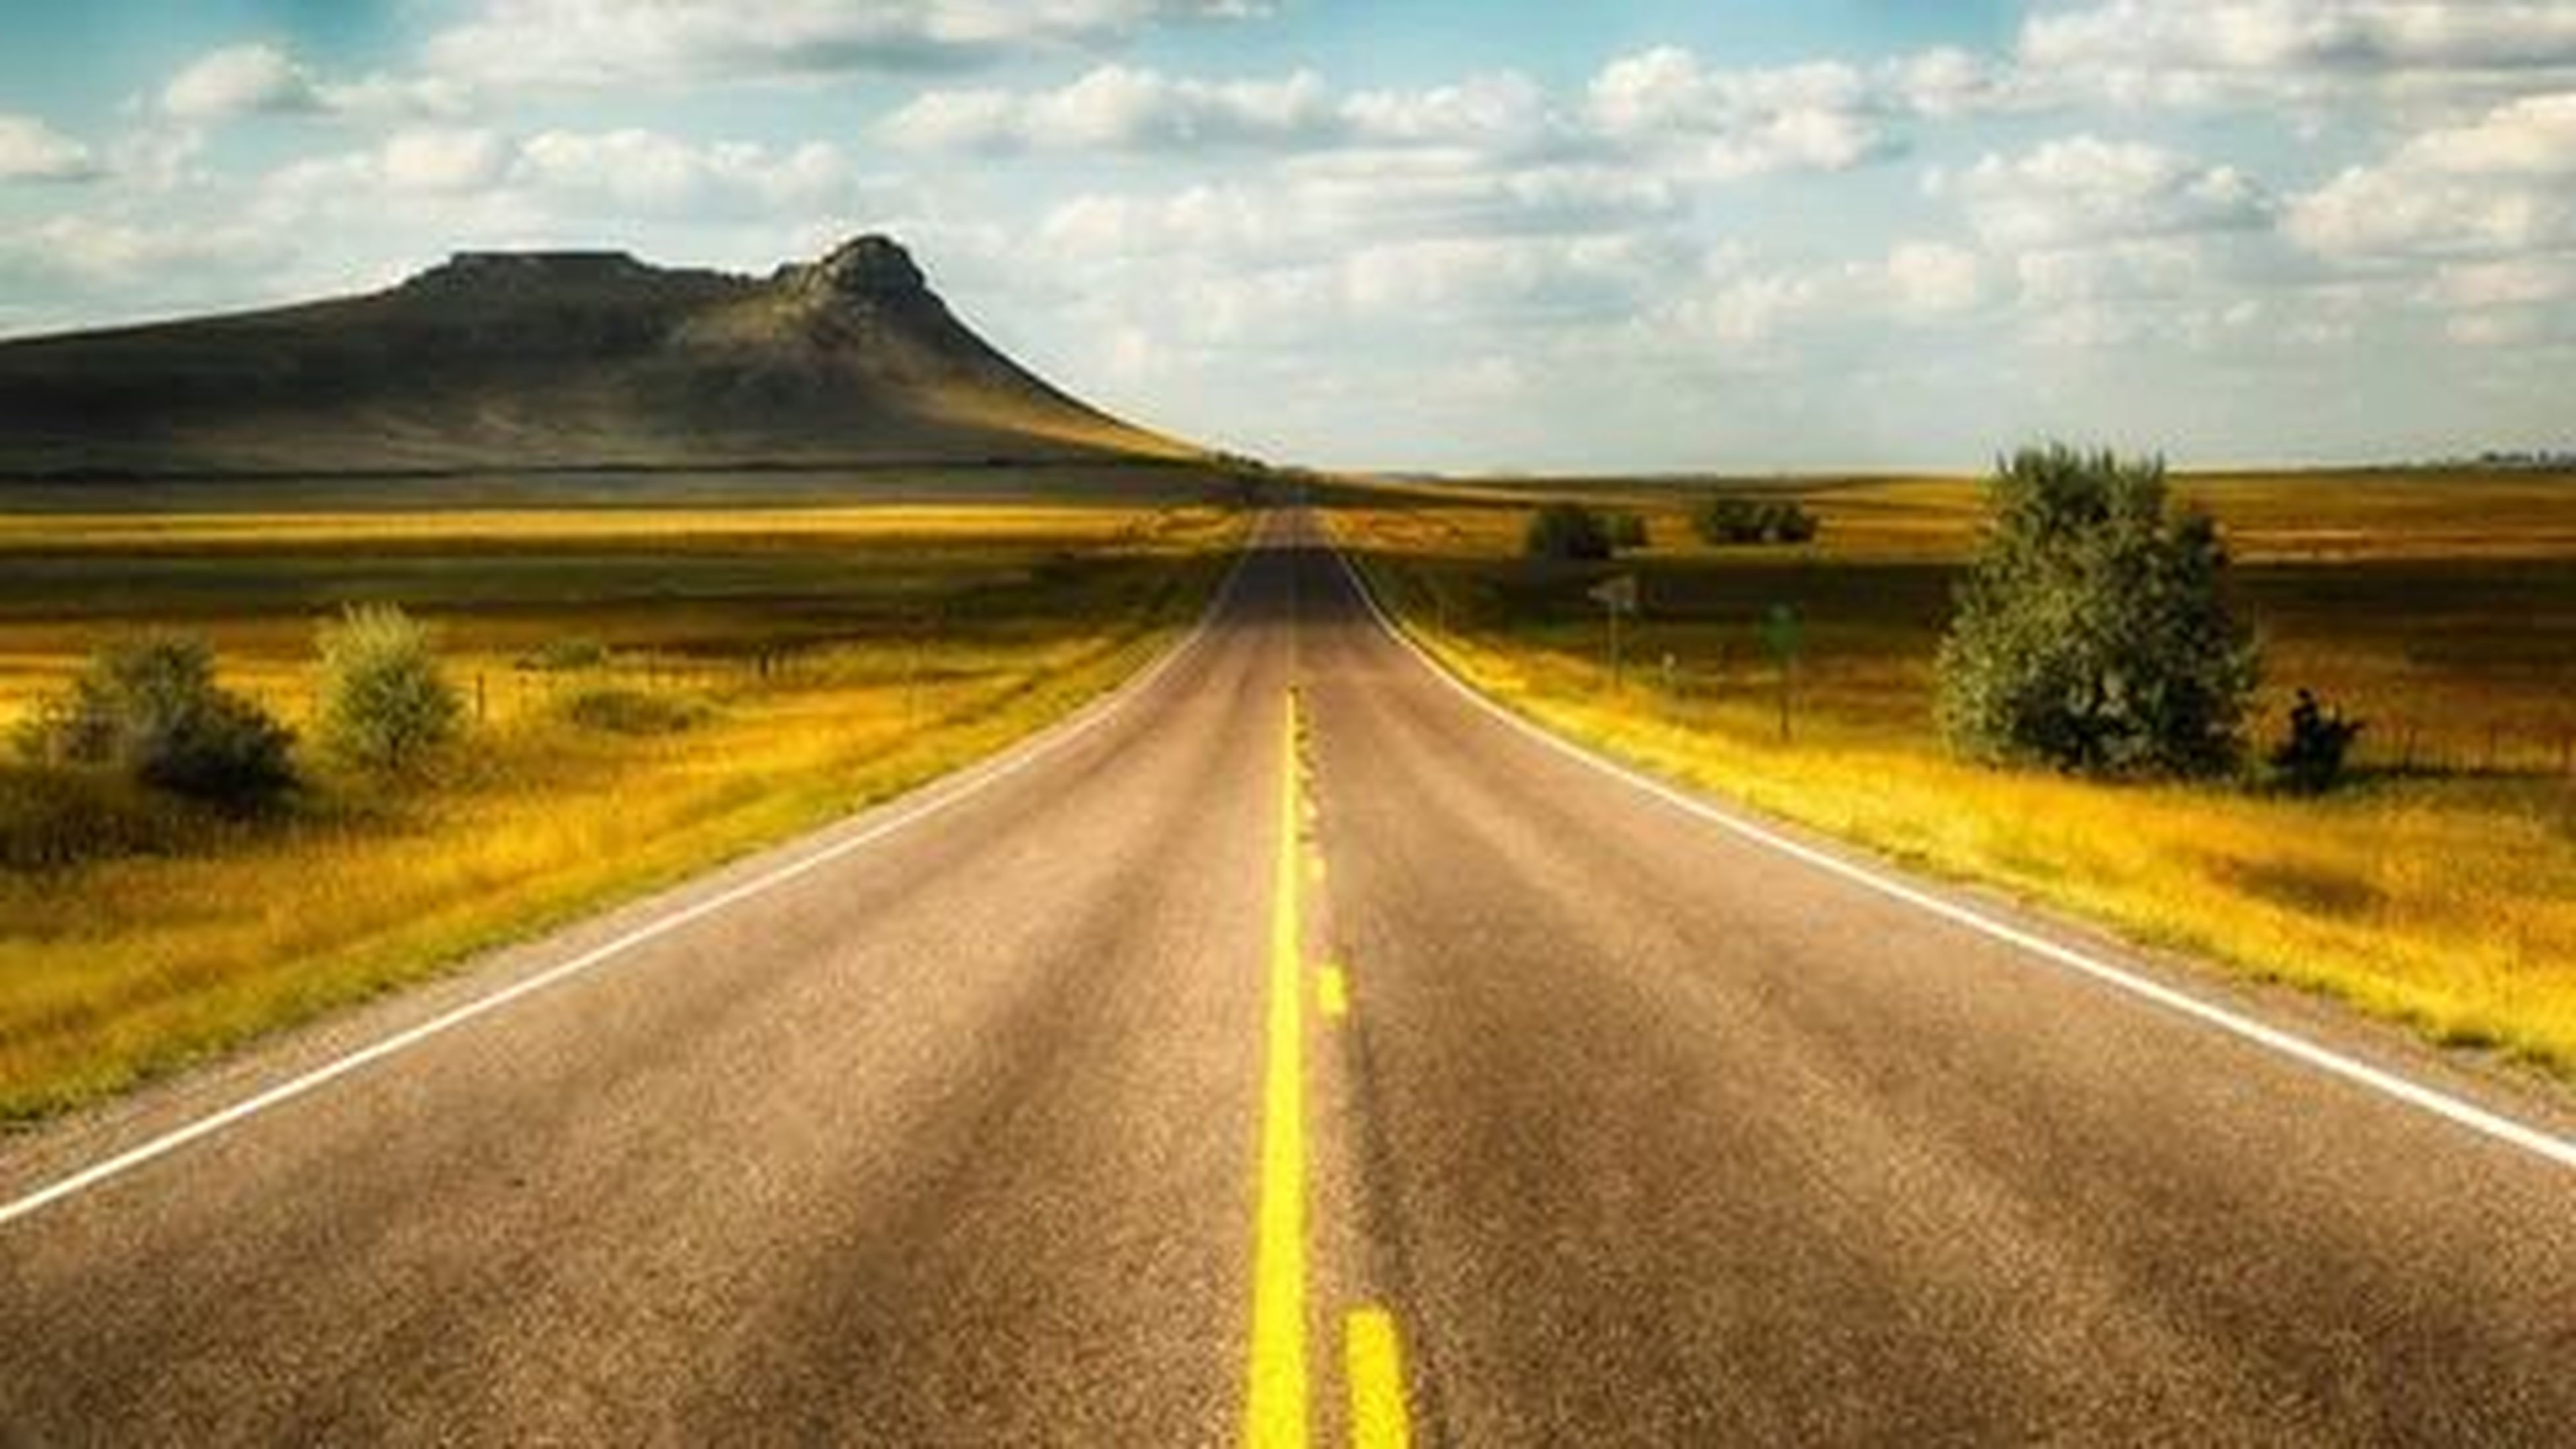 the way forward, road, transportation, diminishing perspective, vanishing point, country road, sky, landscape, road marking, tranquil scene, cloud - sky, tranquility, mountain, empty road, cloud, field, nature, asphalt, scenics, beauty in nature